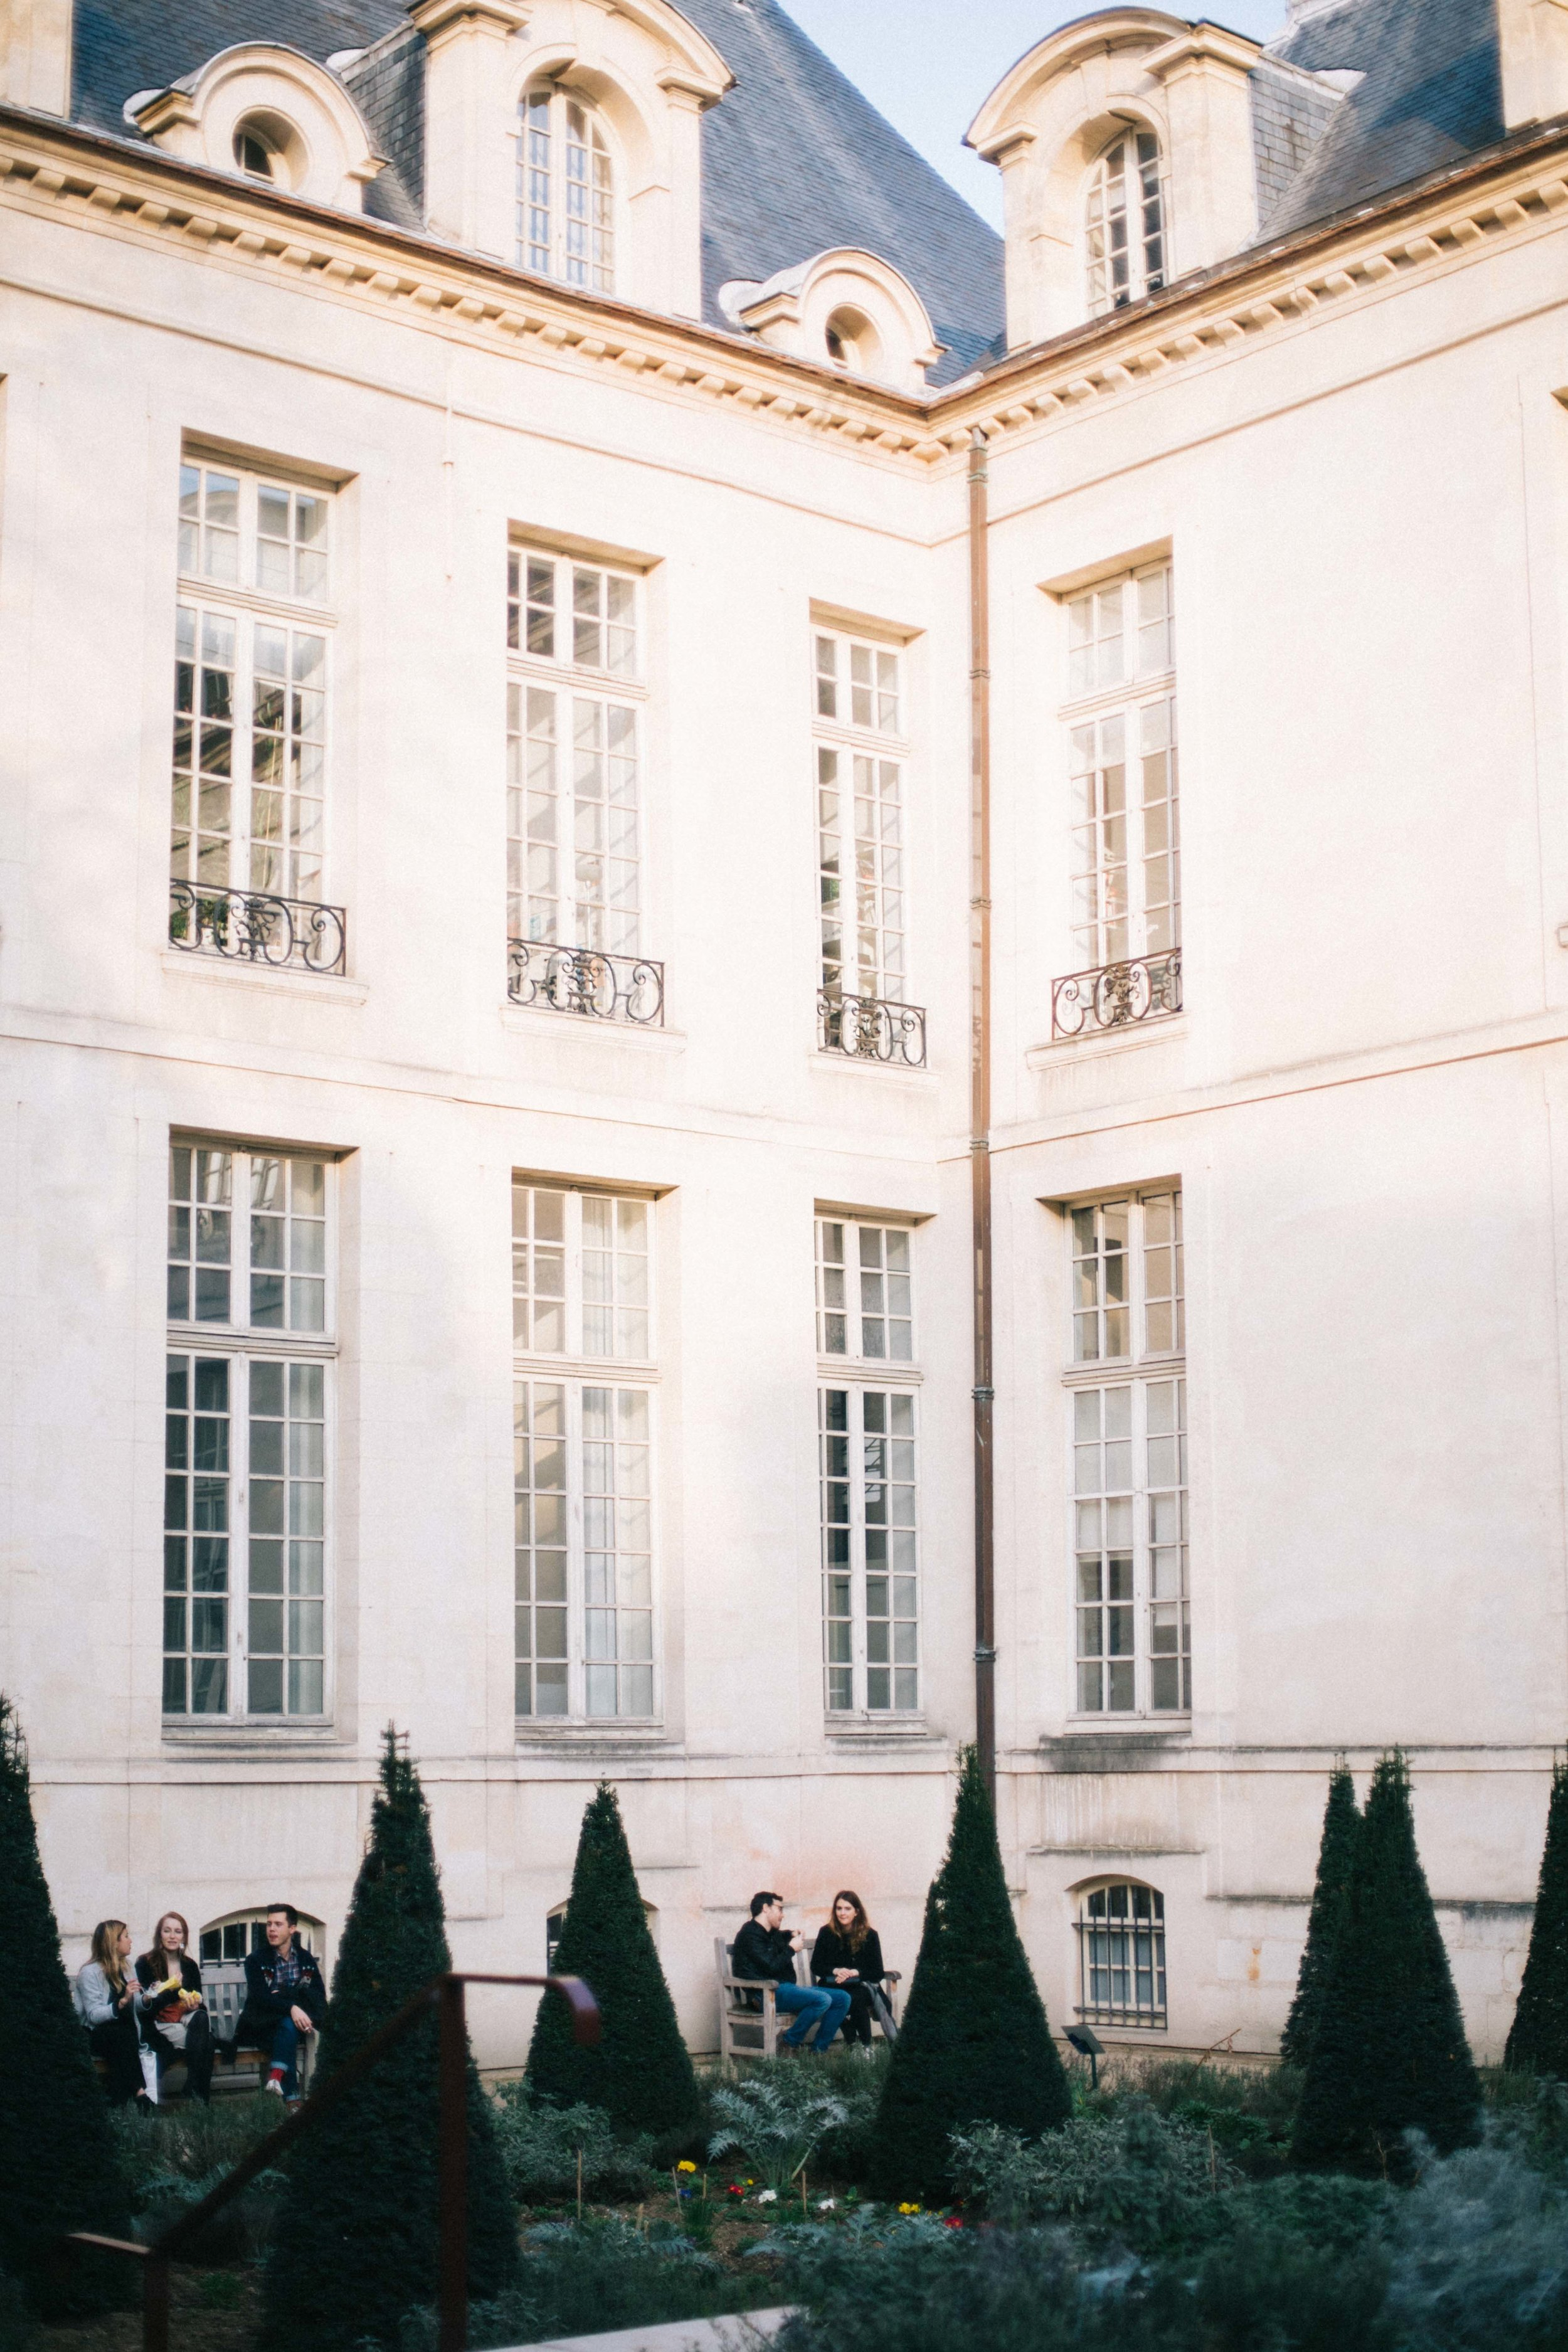 Charlotte Margot Photography Parisian Architecture: Courtyard